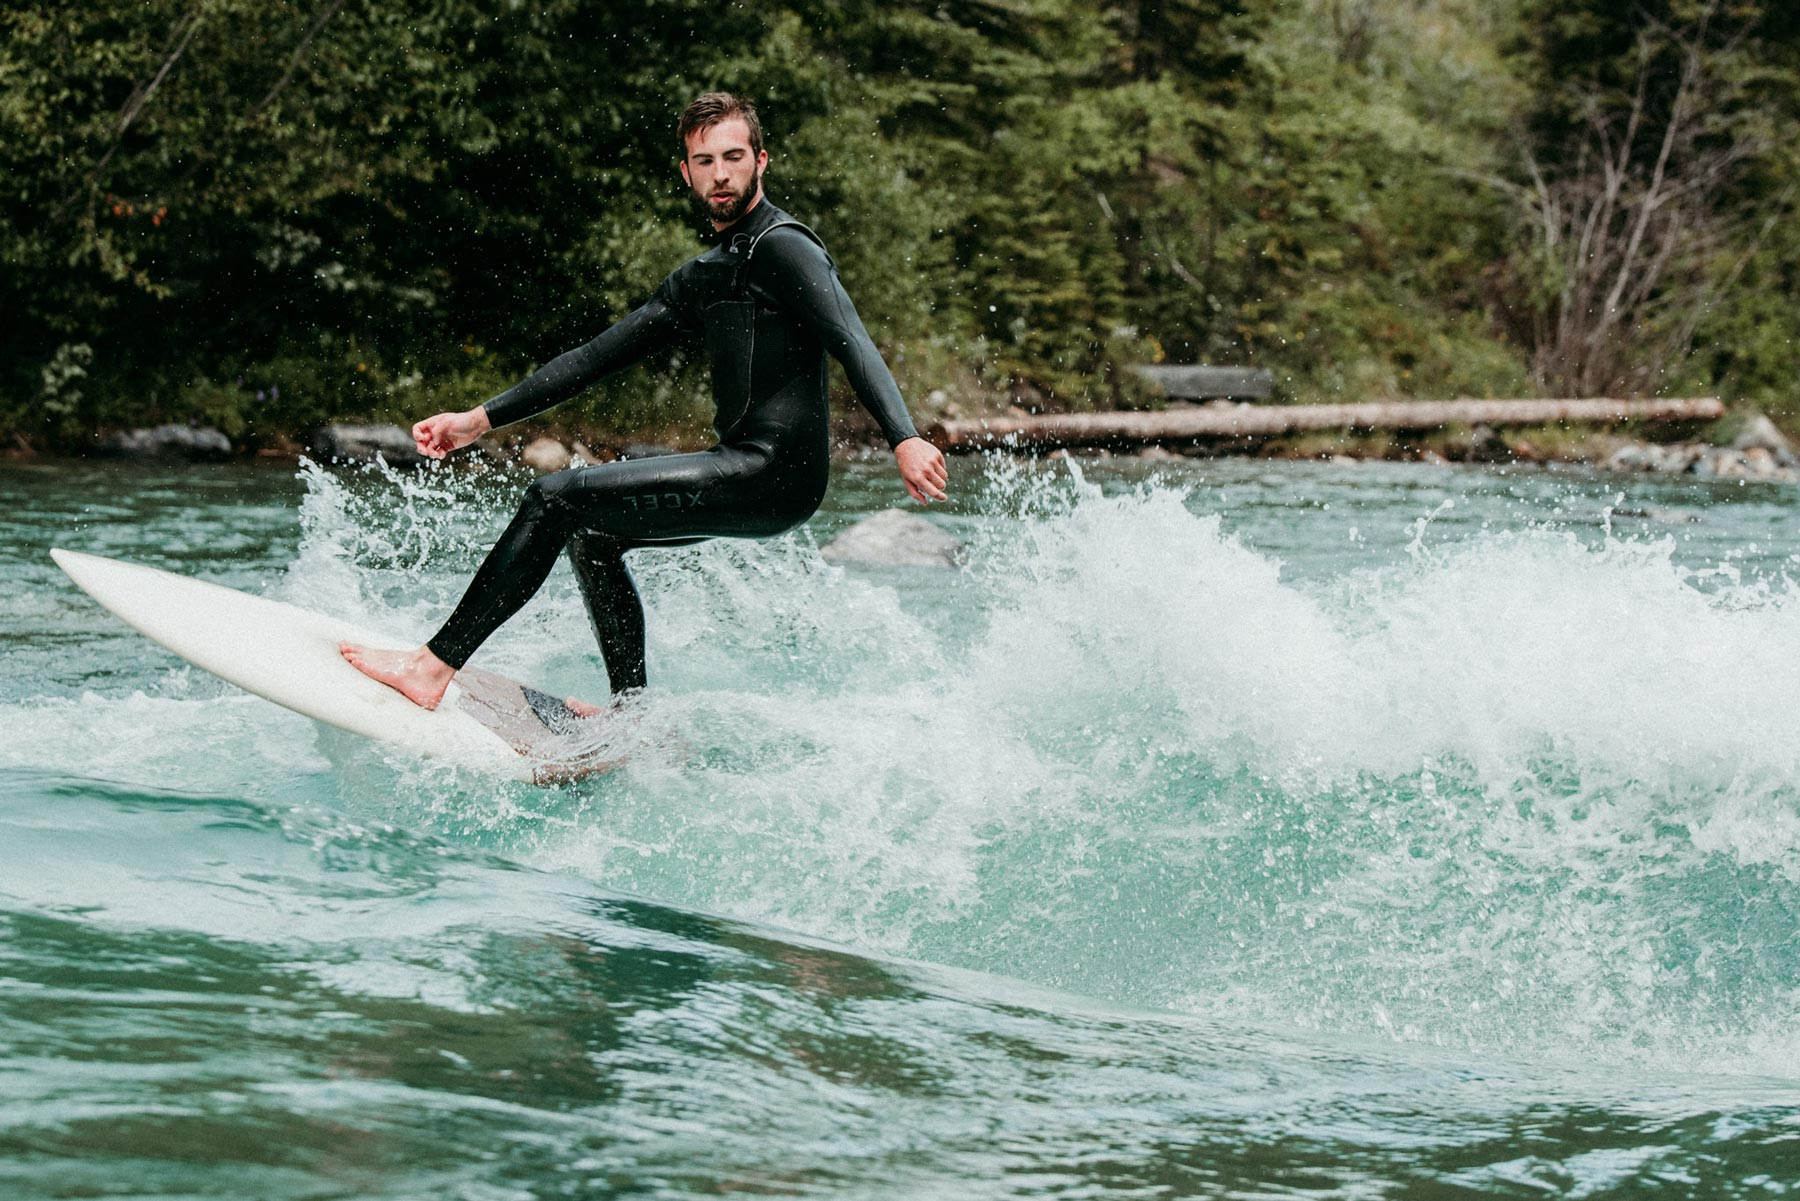 Luke making turns at Kan'. Photo: Chelsea Mackenzie